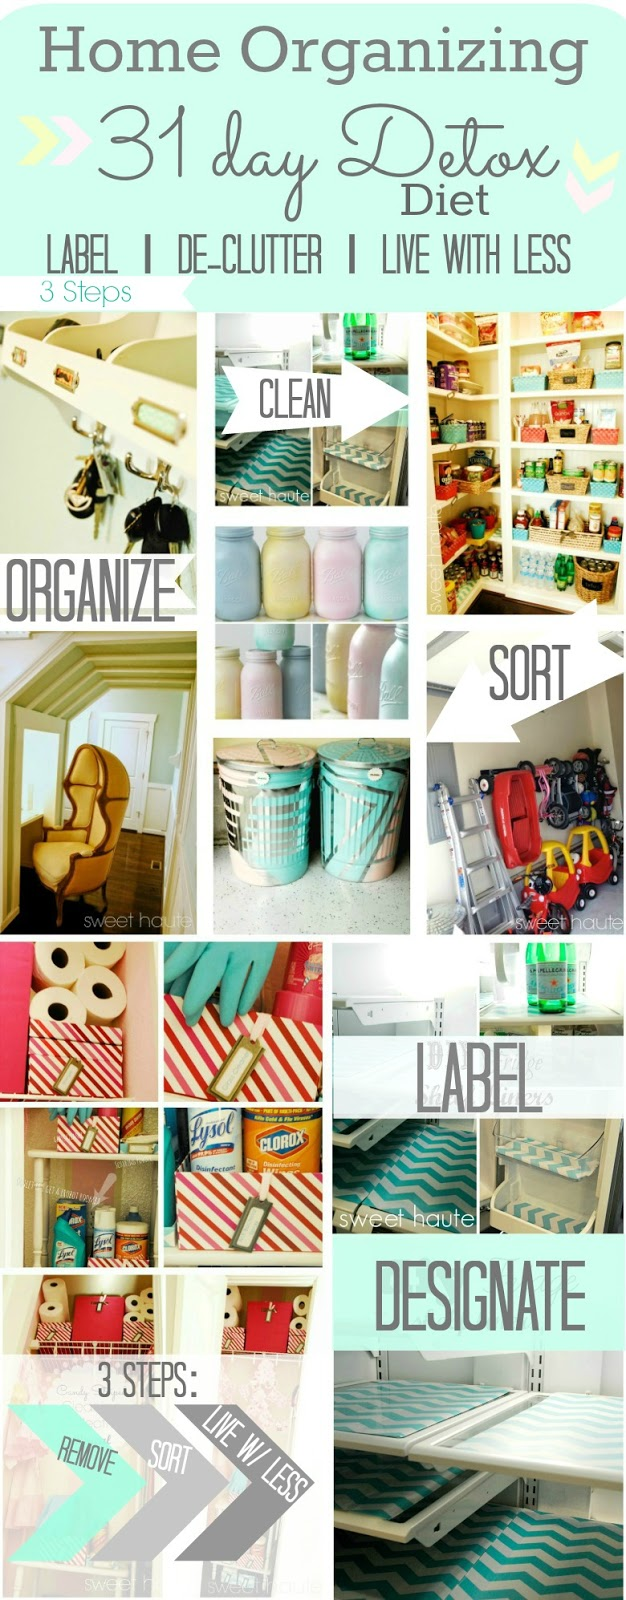 http://sweethaute.blogspot.com/2015/04/home-organization-31-day-detox-diet.html